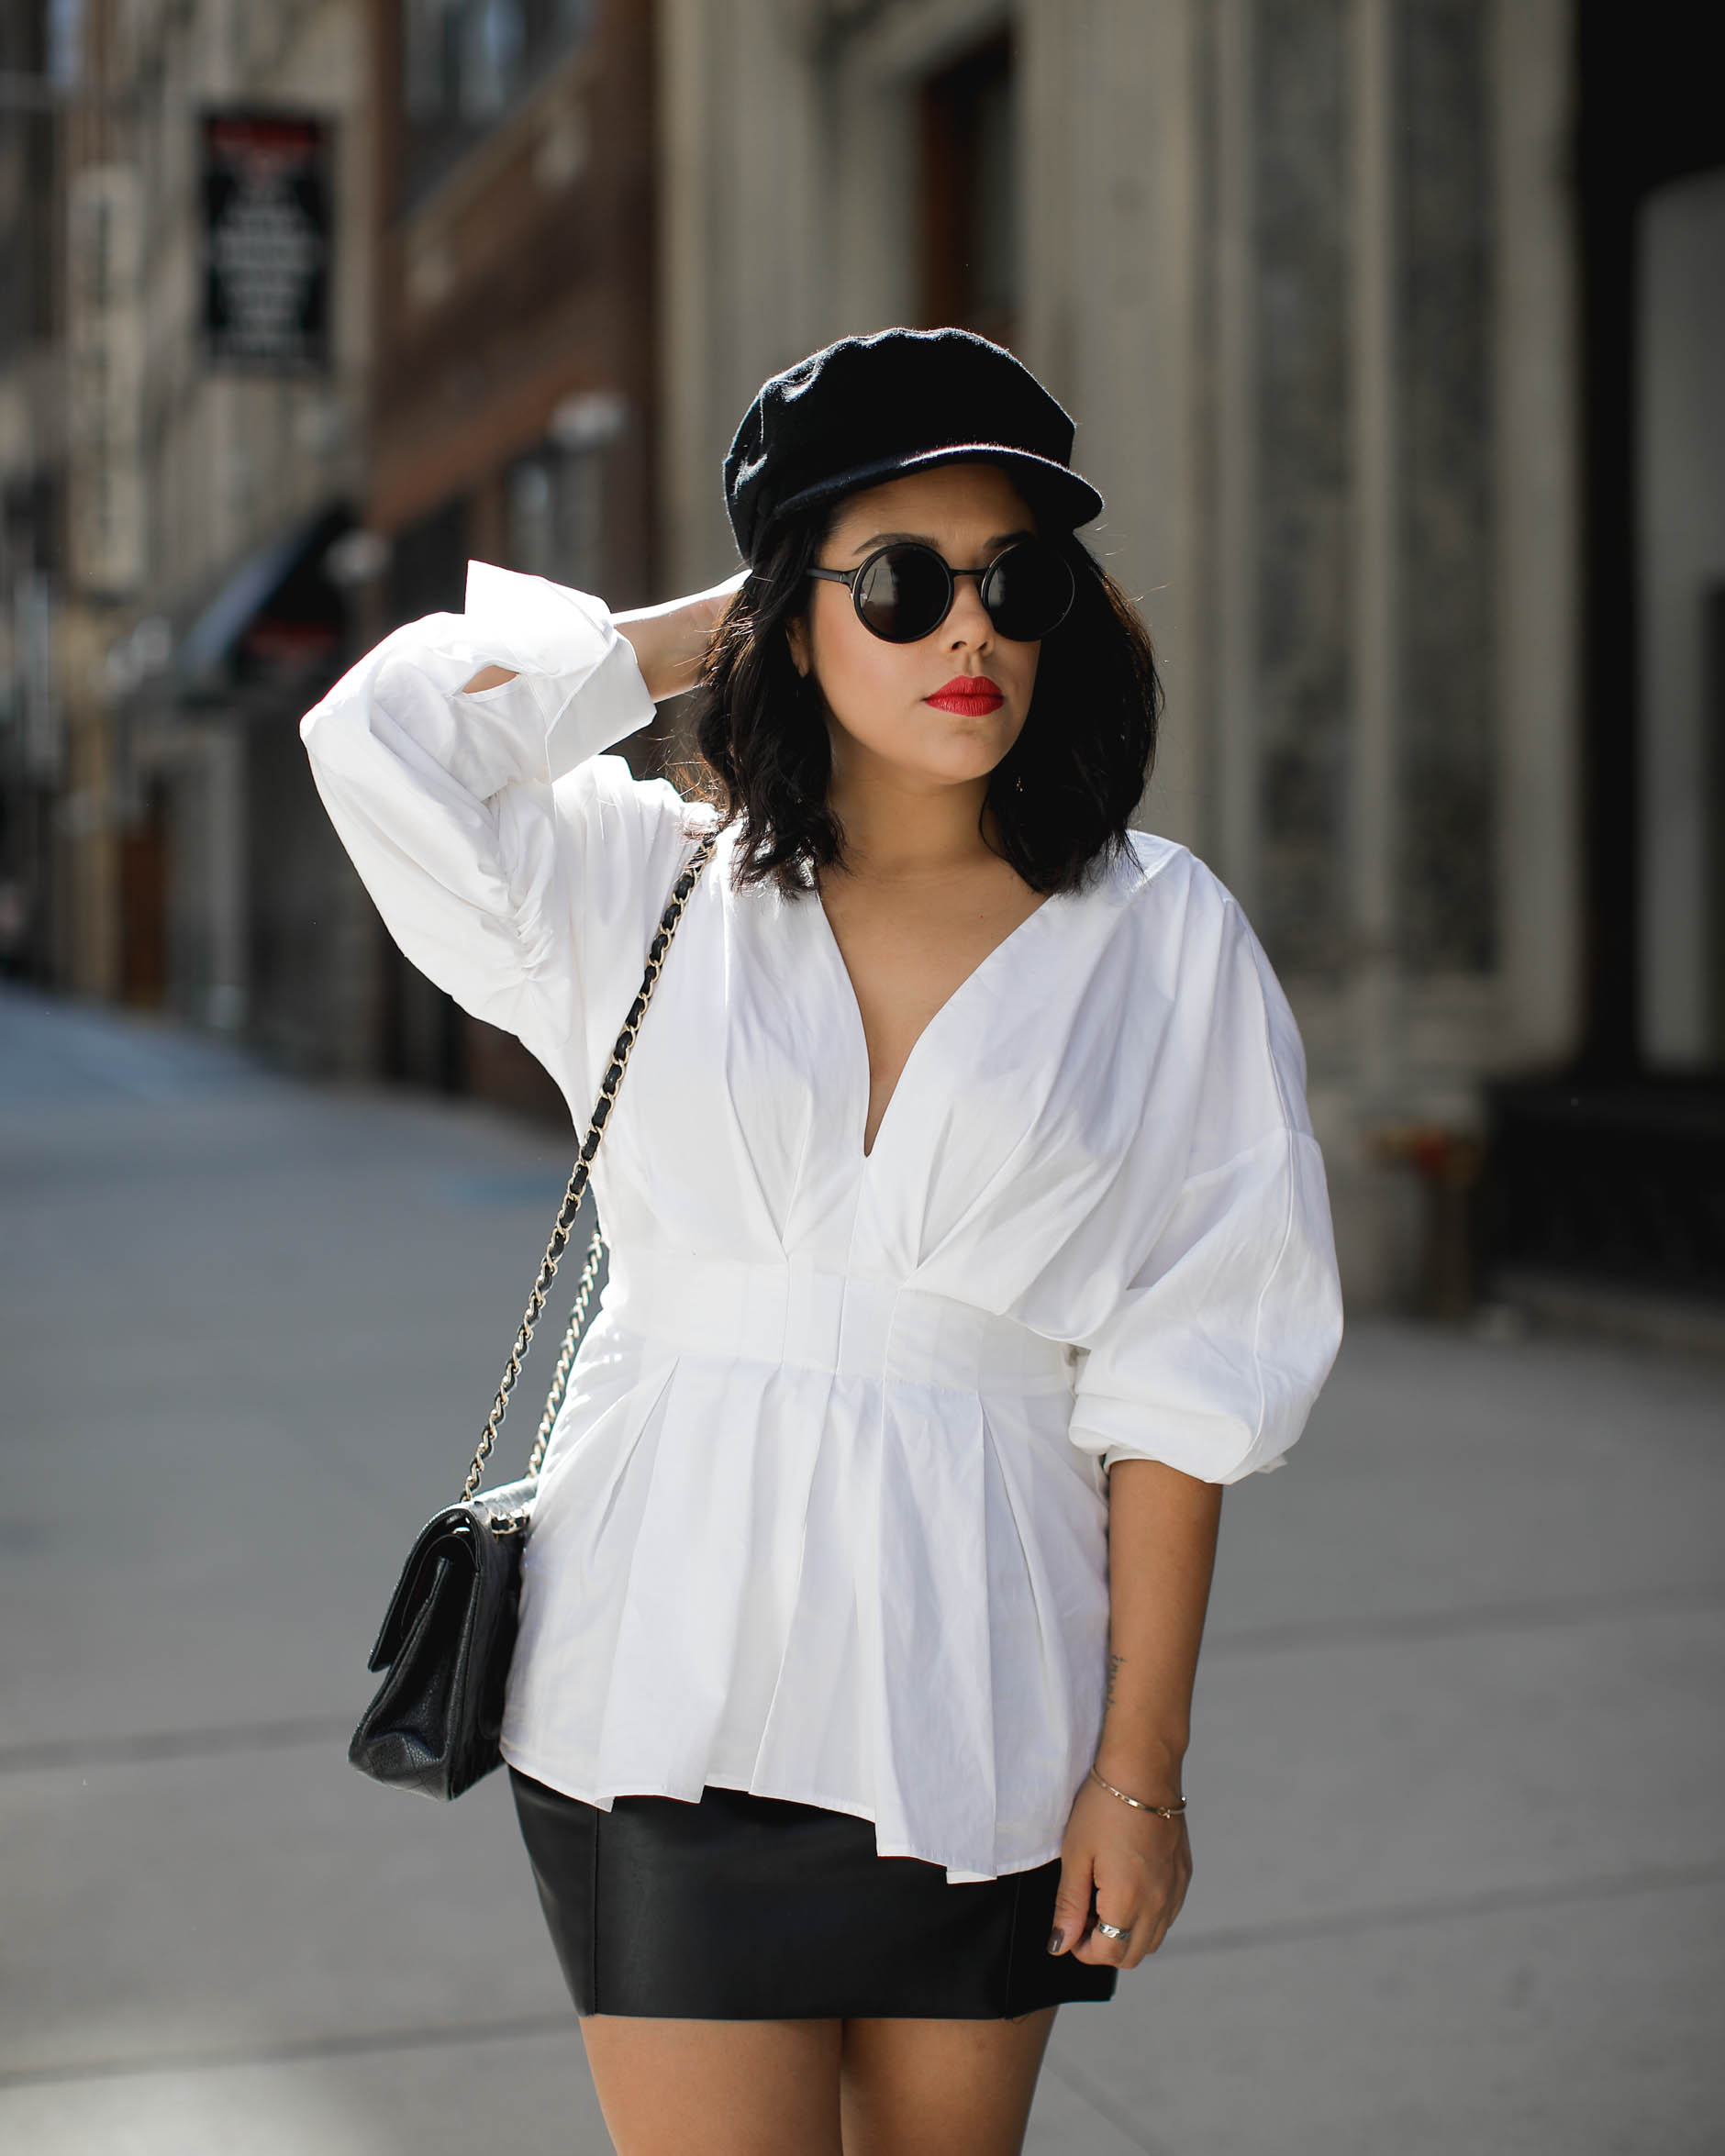 lifestyle blogger naty michele wearing statement sleeves and cabbie hat